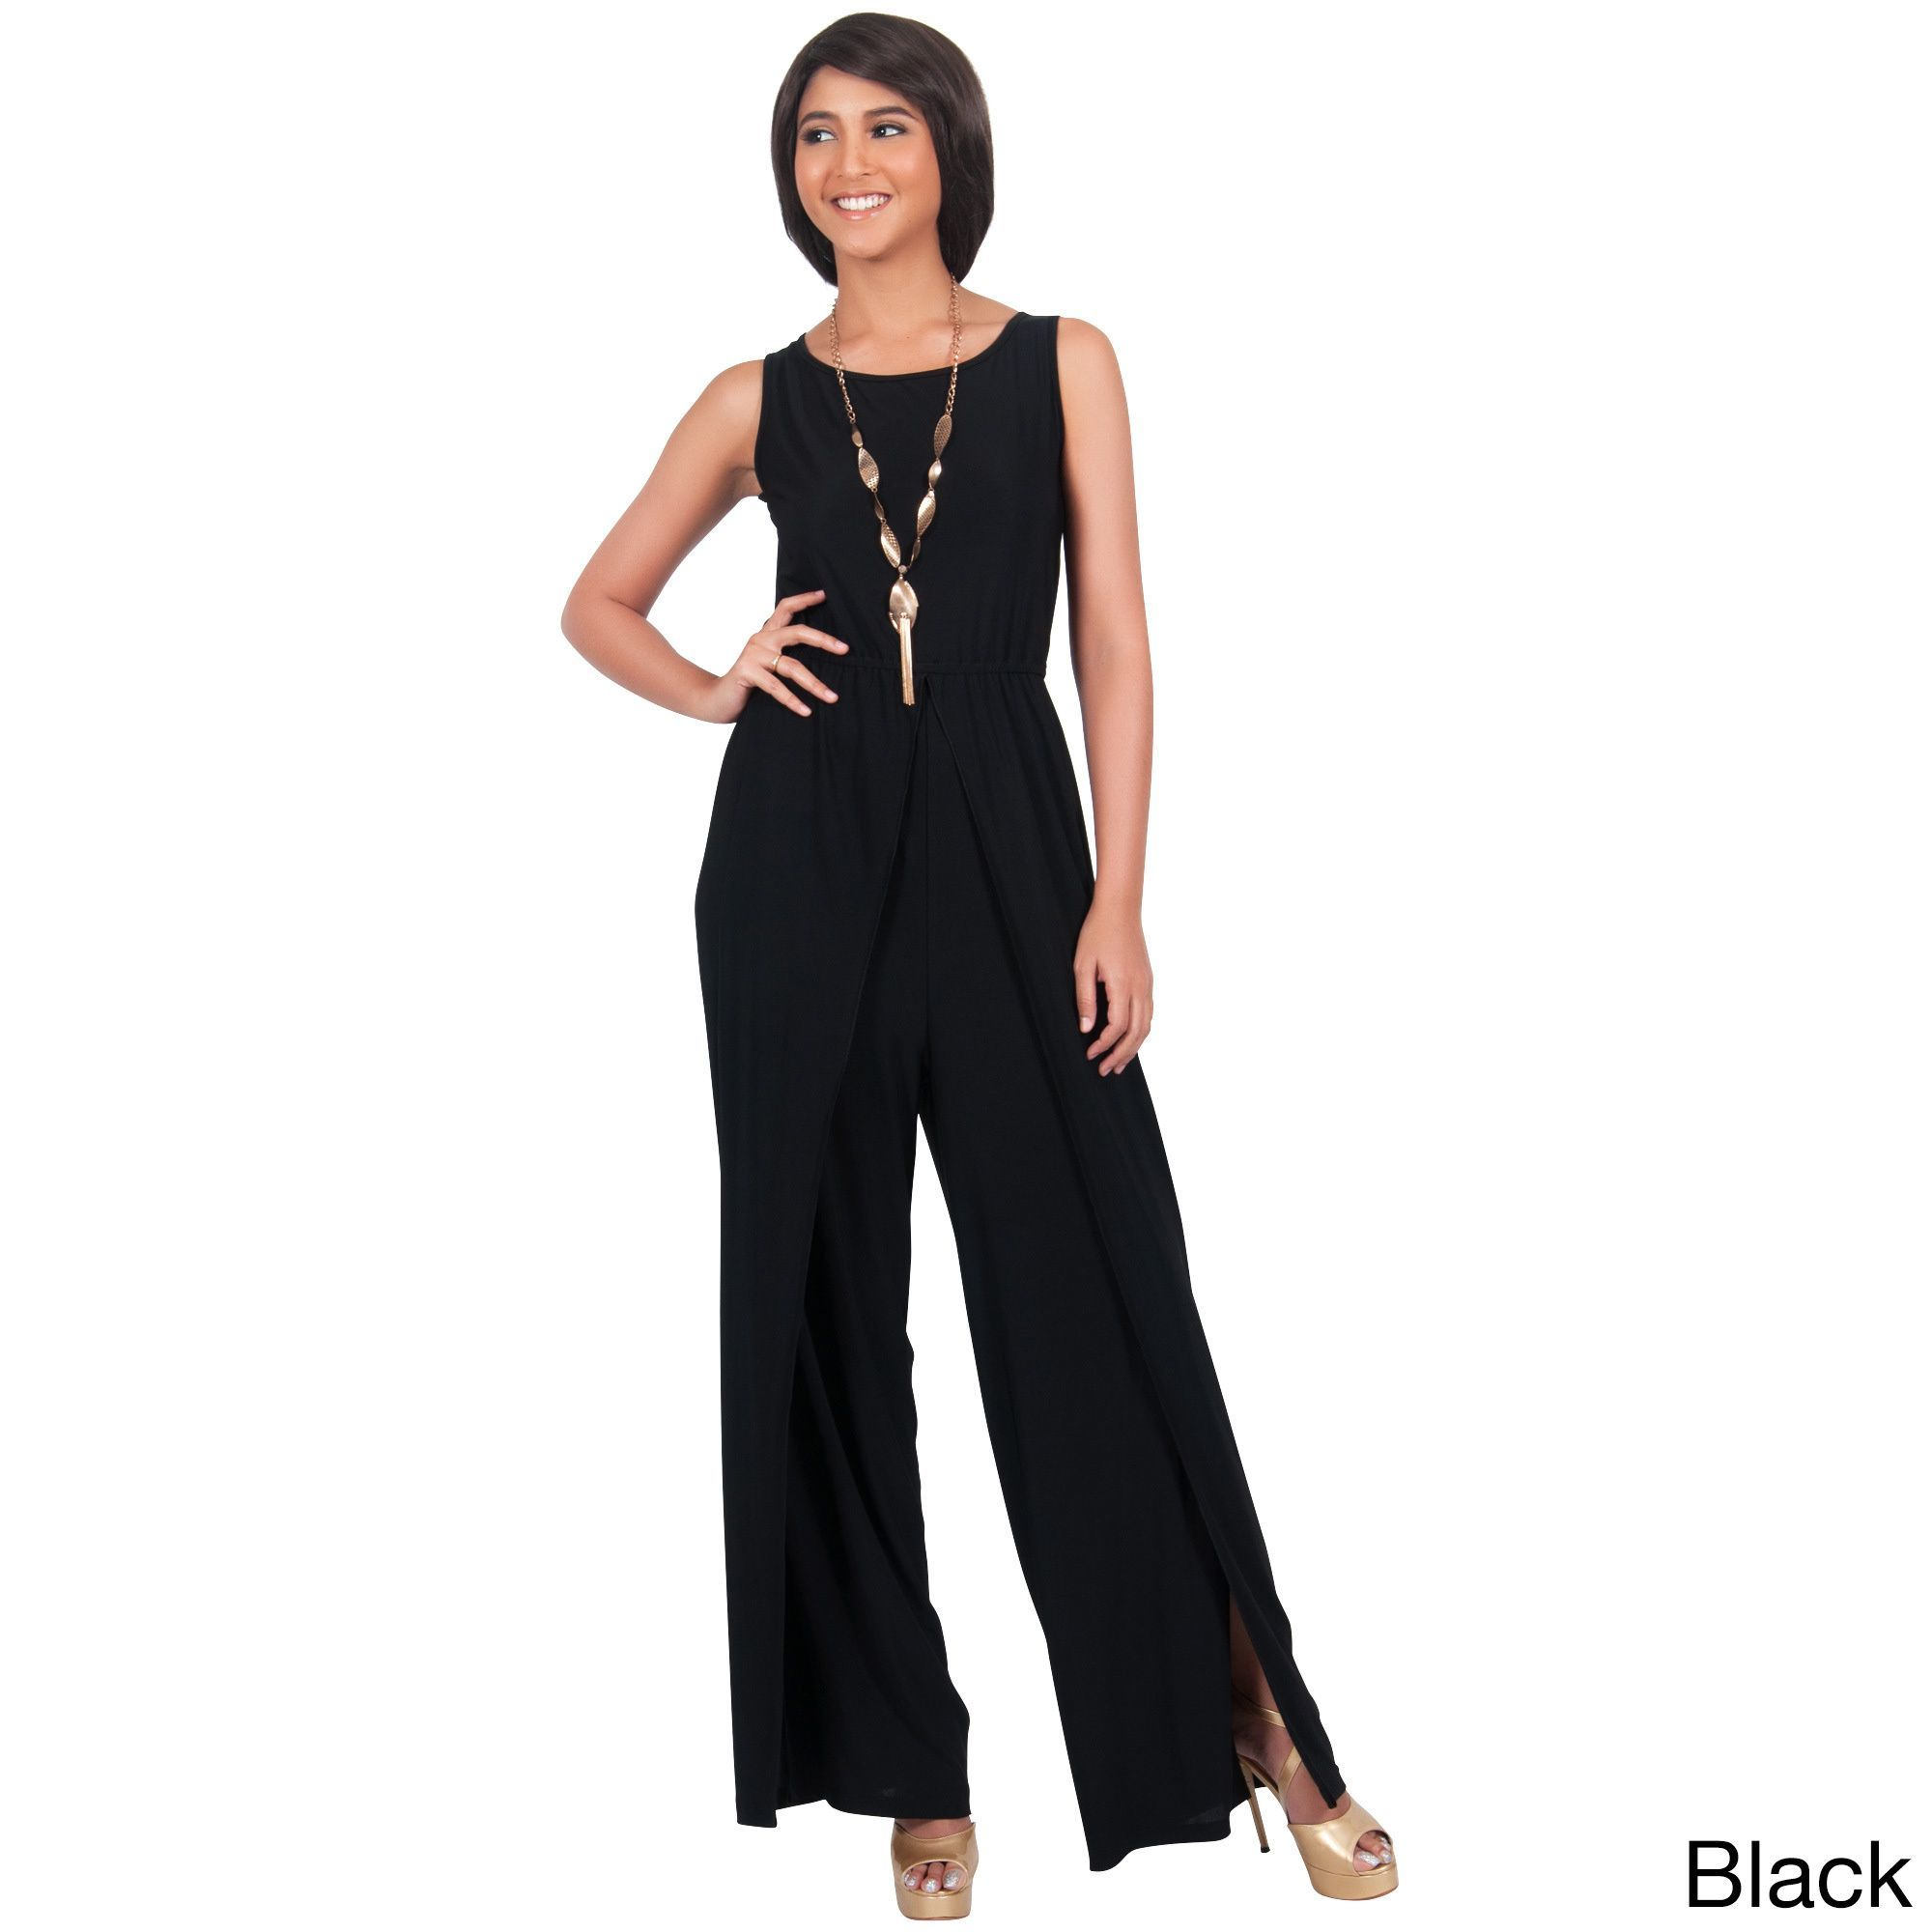 93024c192ce Global KOH KOH Women s Sleeveless Round Neckline Slimming Flared One-piece  Pantsuit with Side Slits